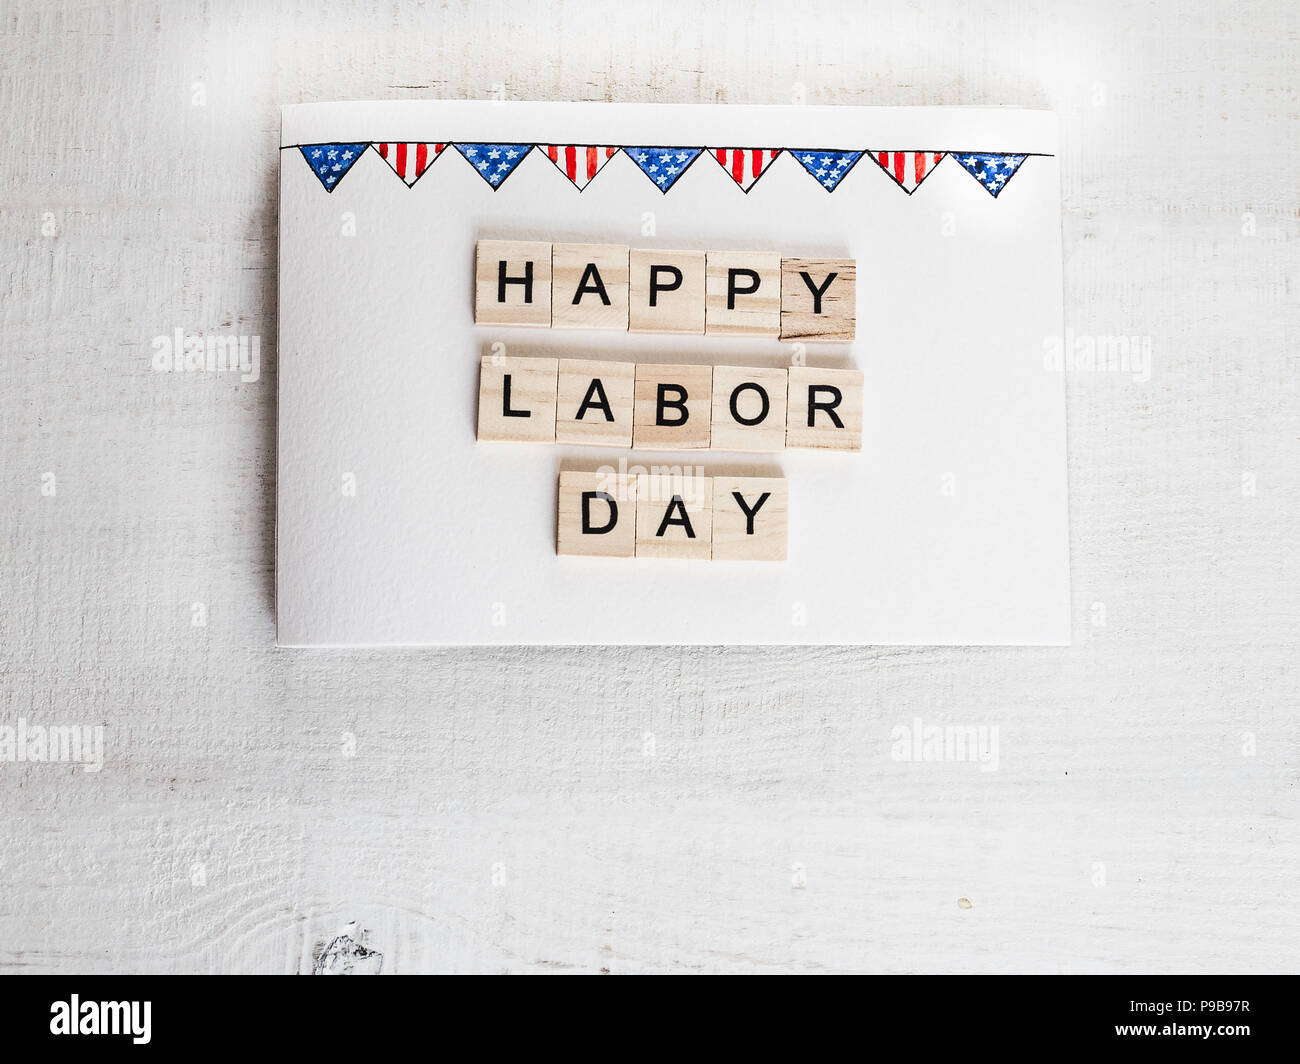 Beautiful Greeting Card On Labor Day Preparation For The Holiday